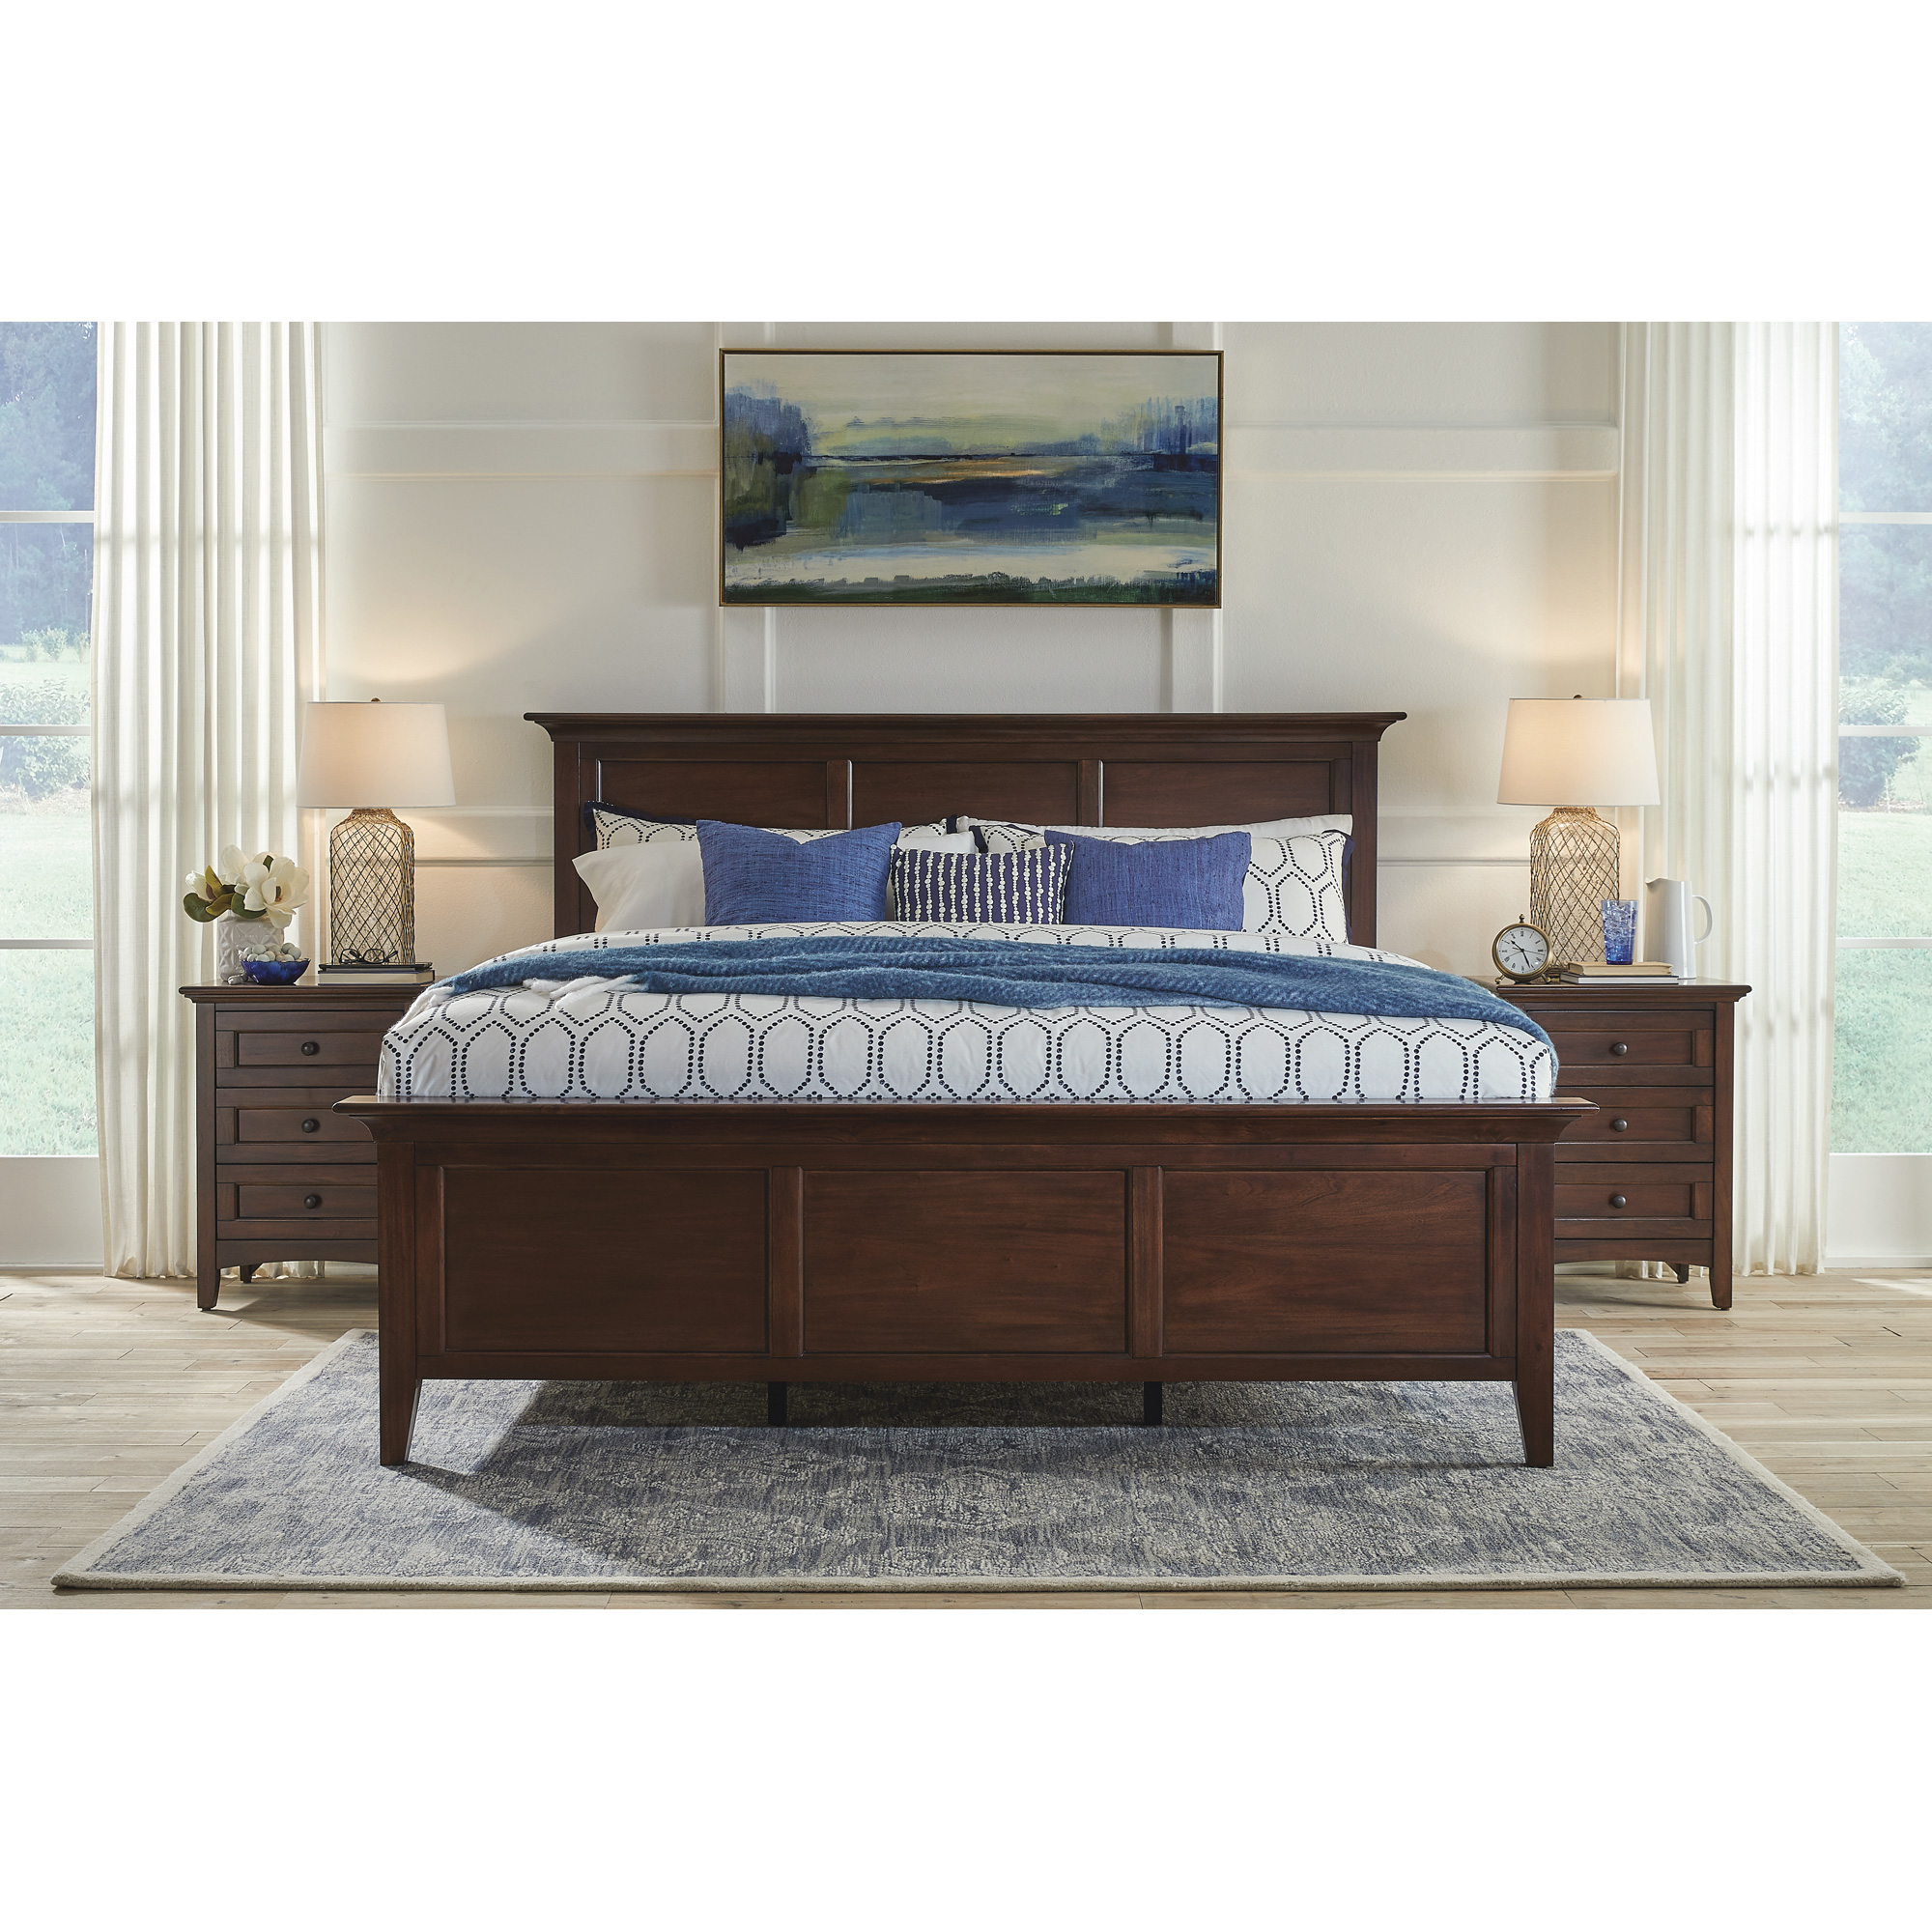 A America | Westlake Cherry Brown King Panel Bed